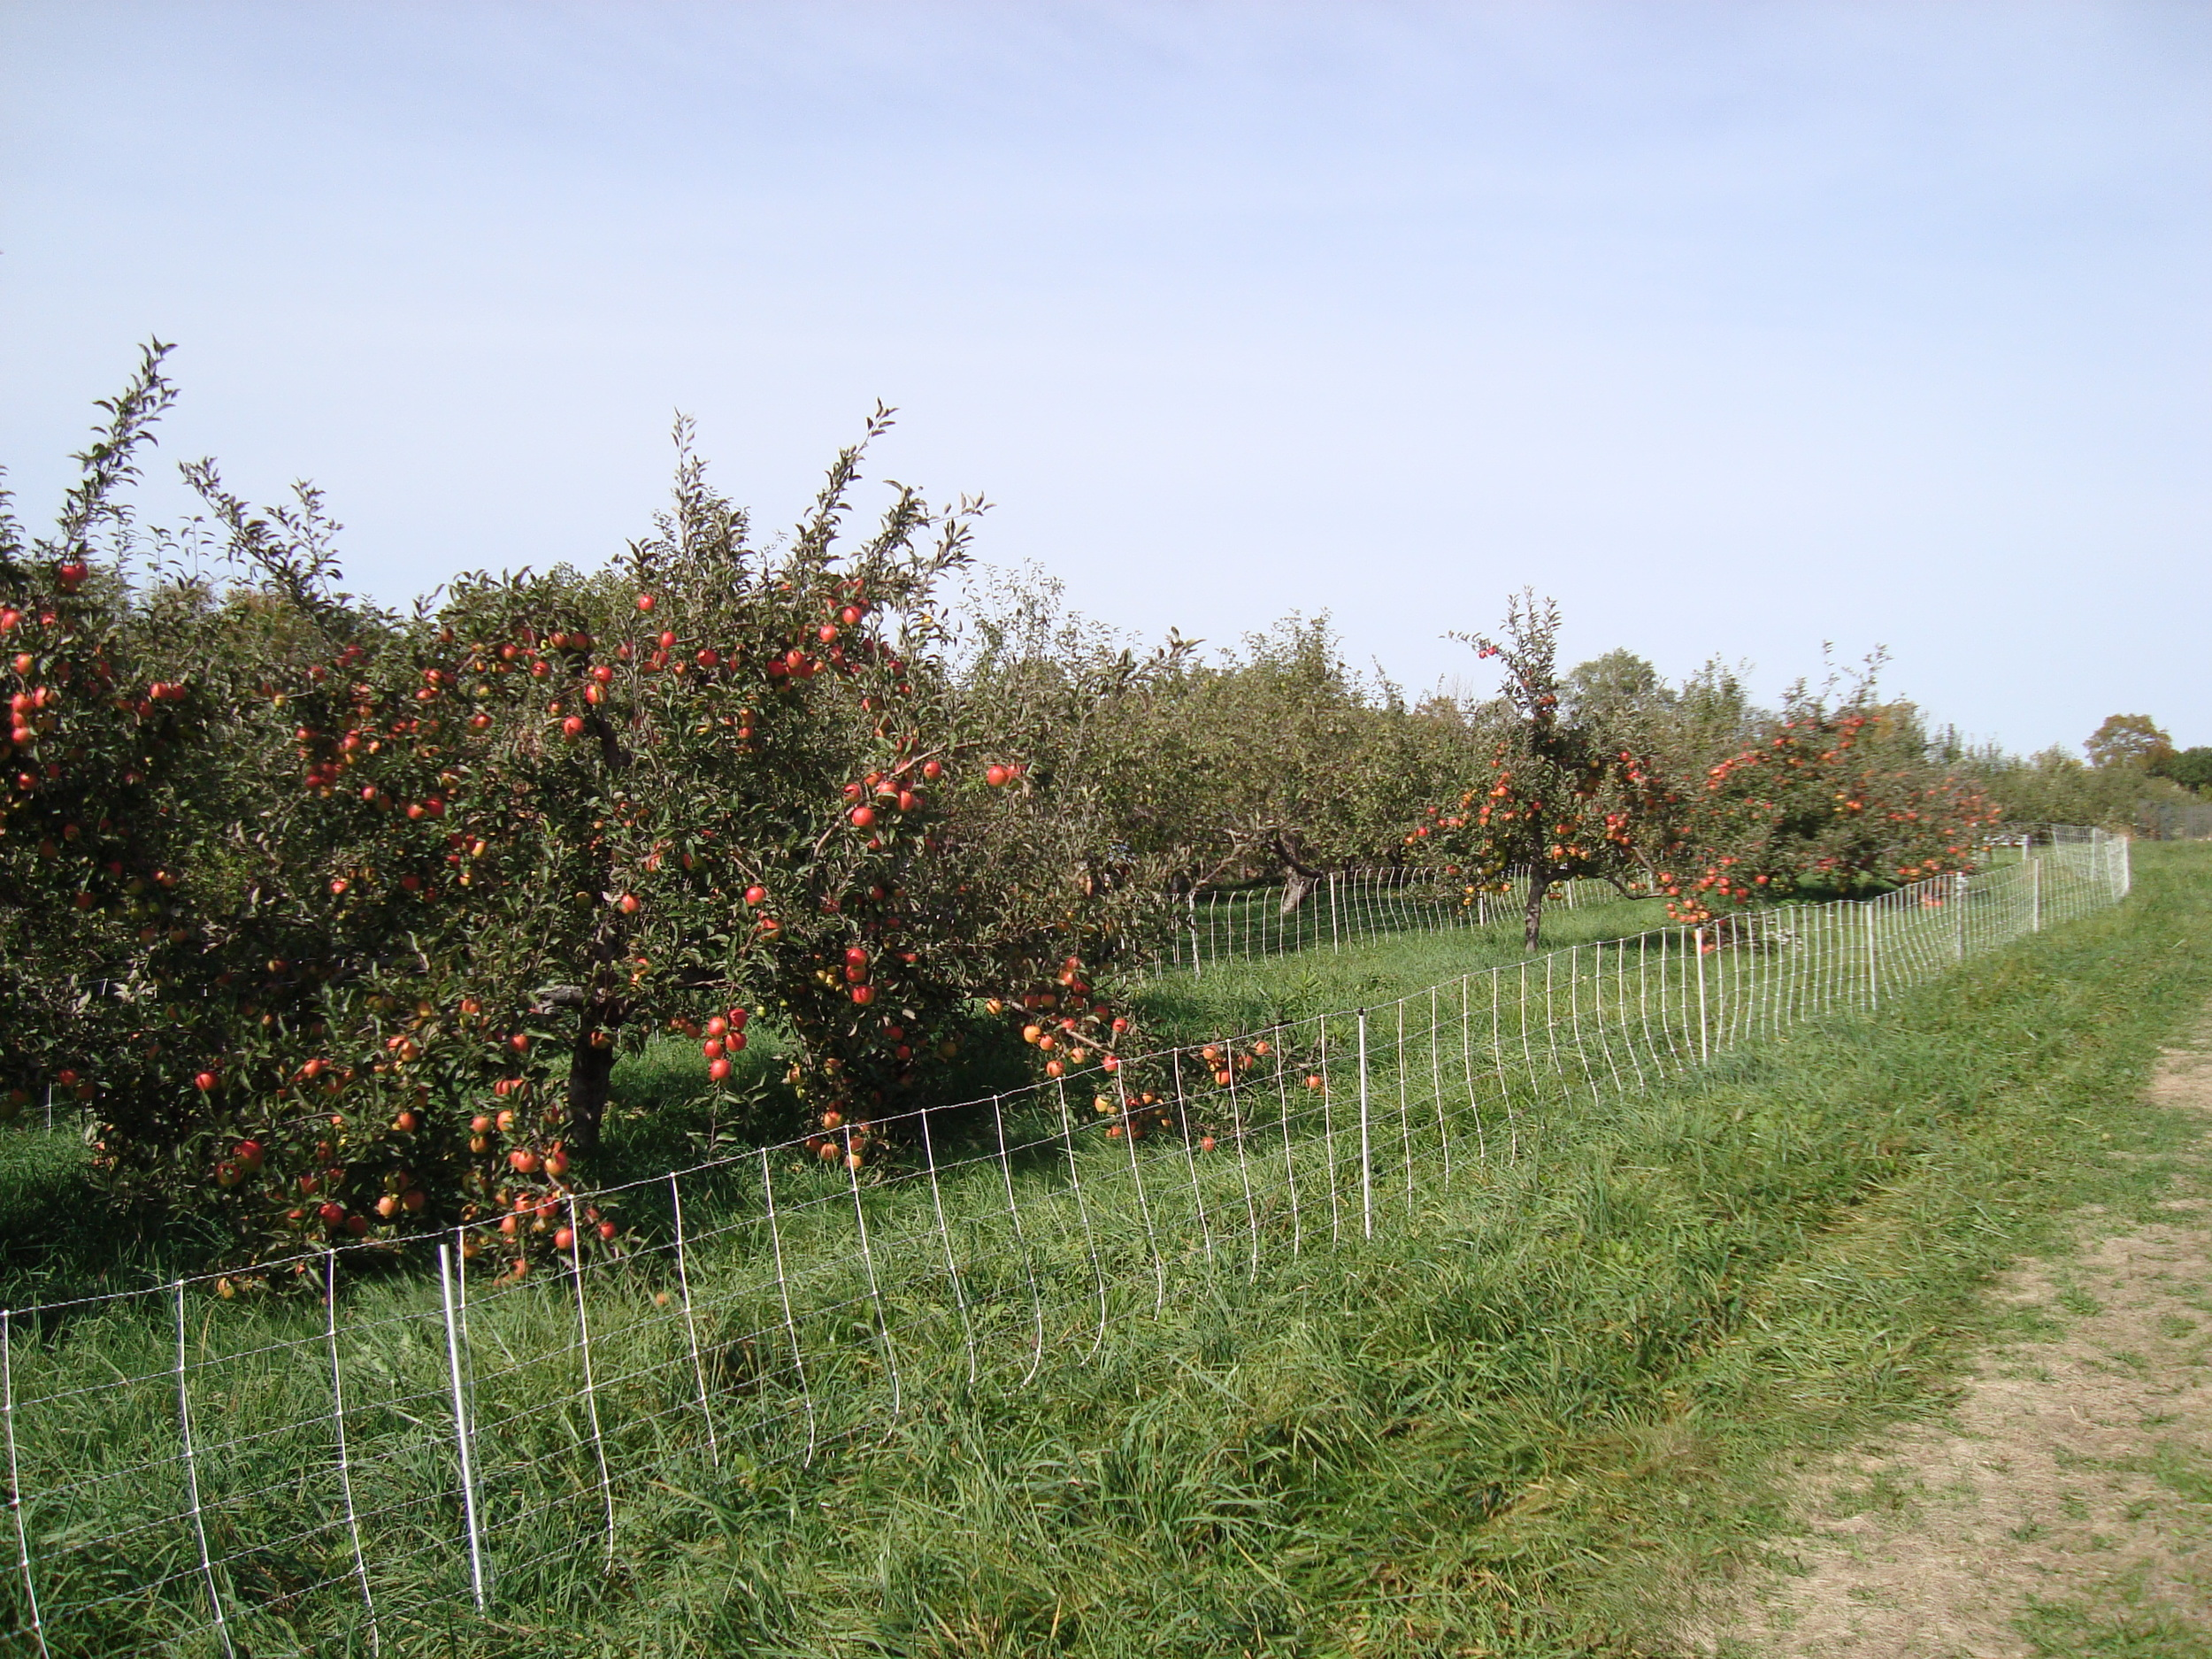 Apple picking for a simple, seasonal fall activity | Litterless